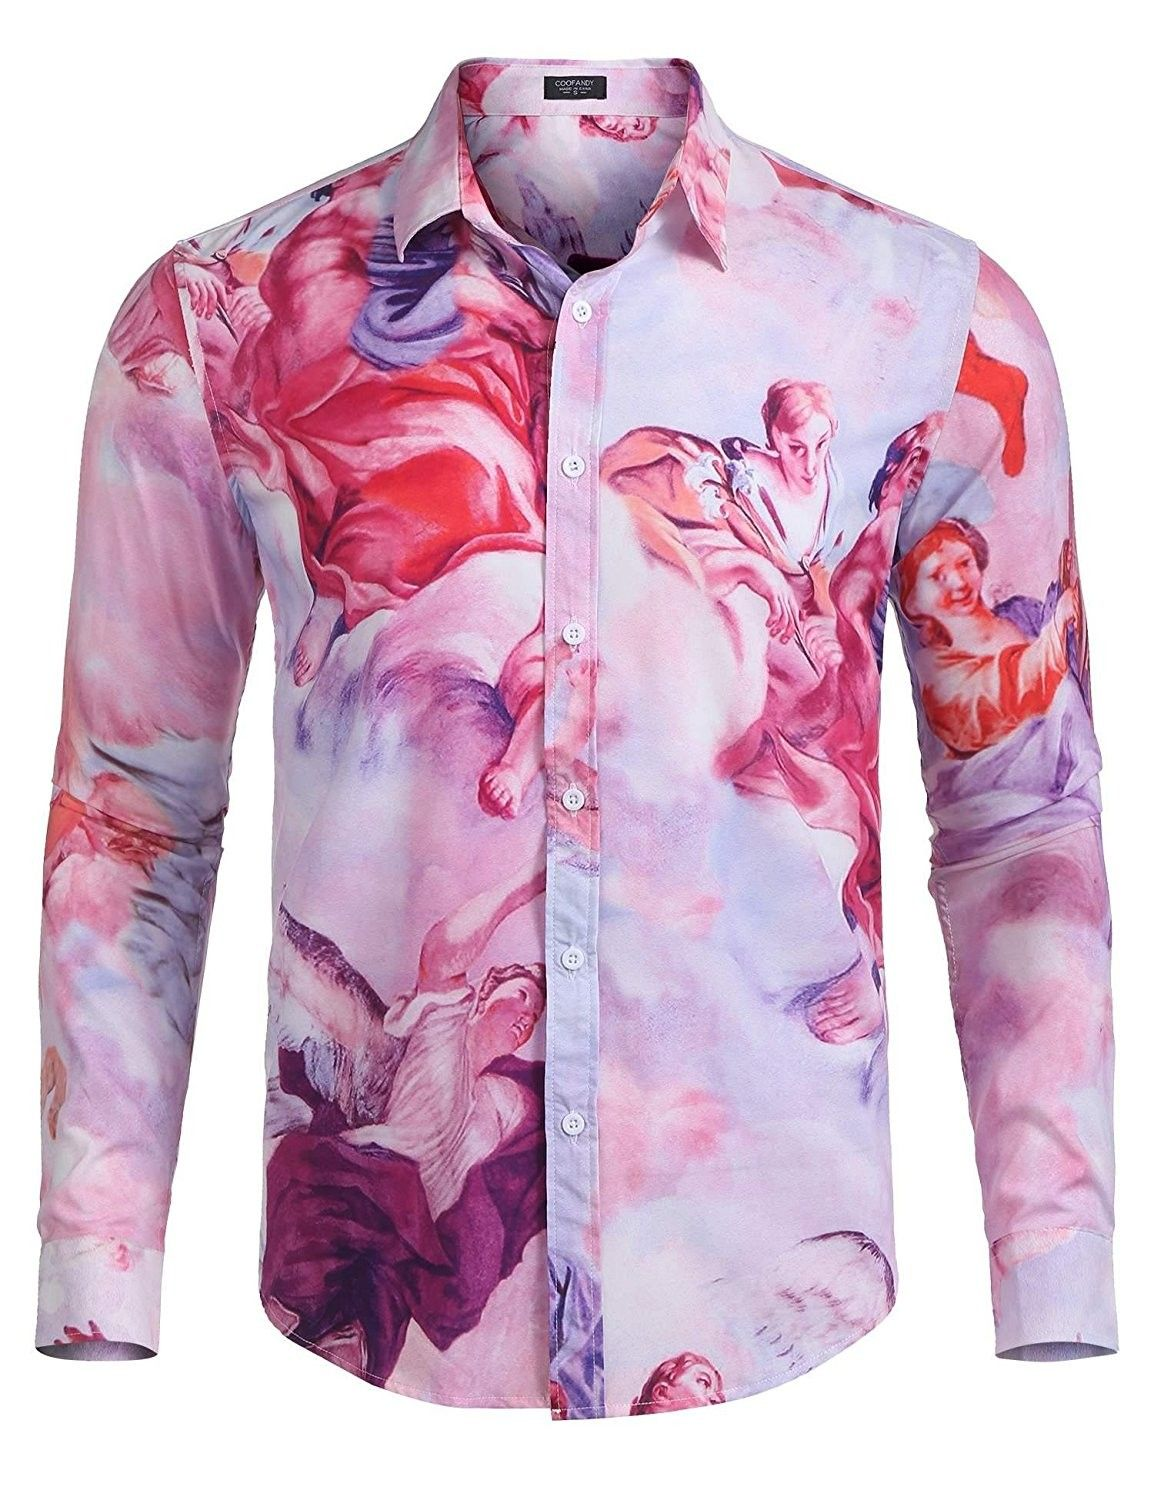 URBAN REVIVAL Men/'s Floral Printed Polo Shirt Cotton Rich Smart Casual Top New